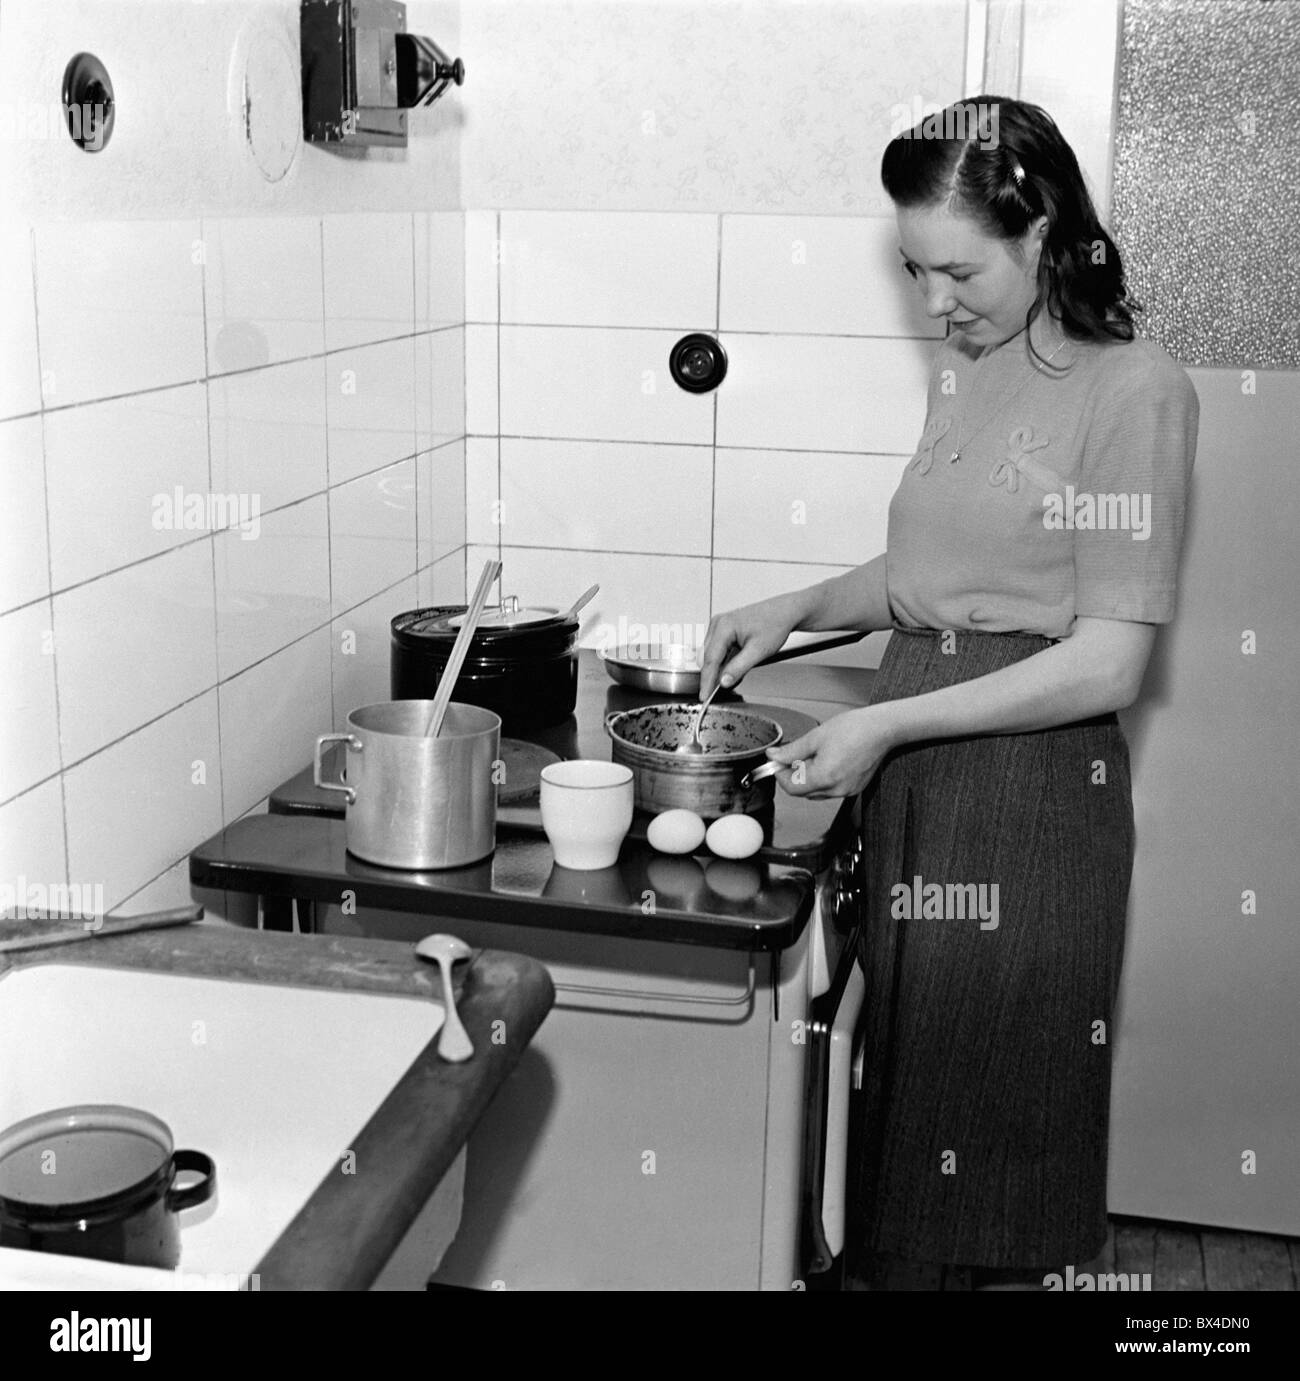 Vintage Woman Cooking Stock Photos & Vintage Woman Cooking ...